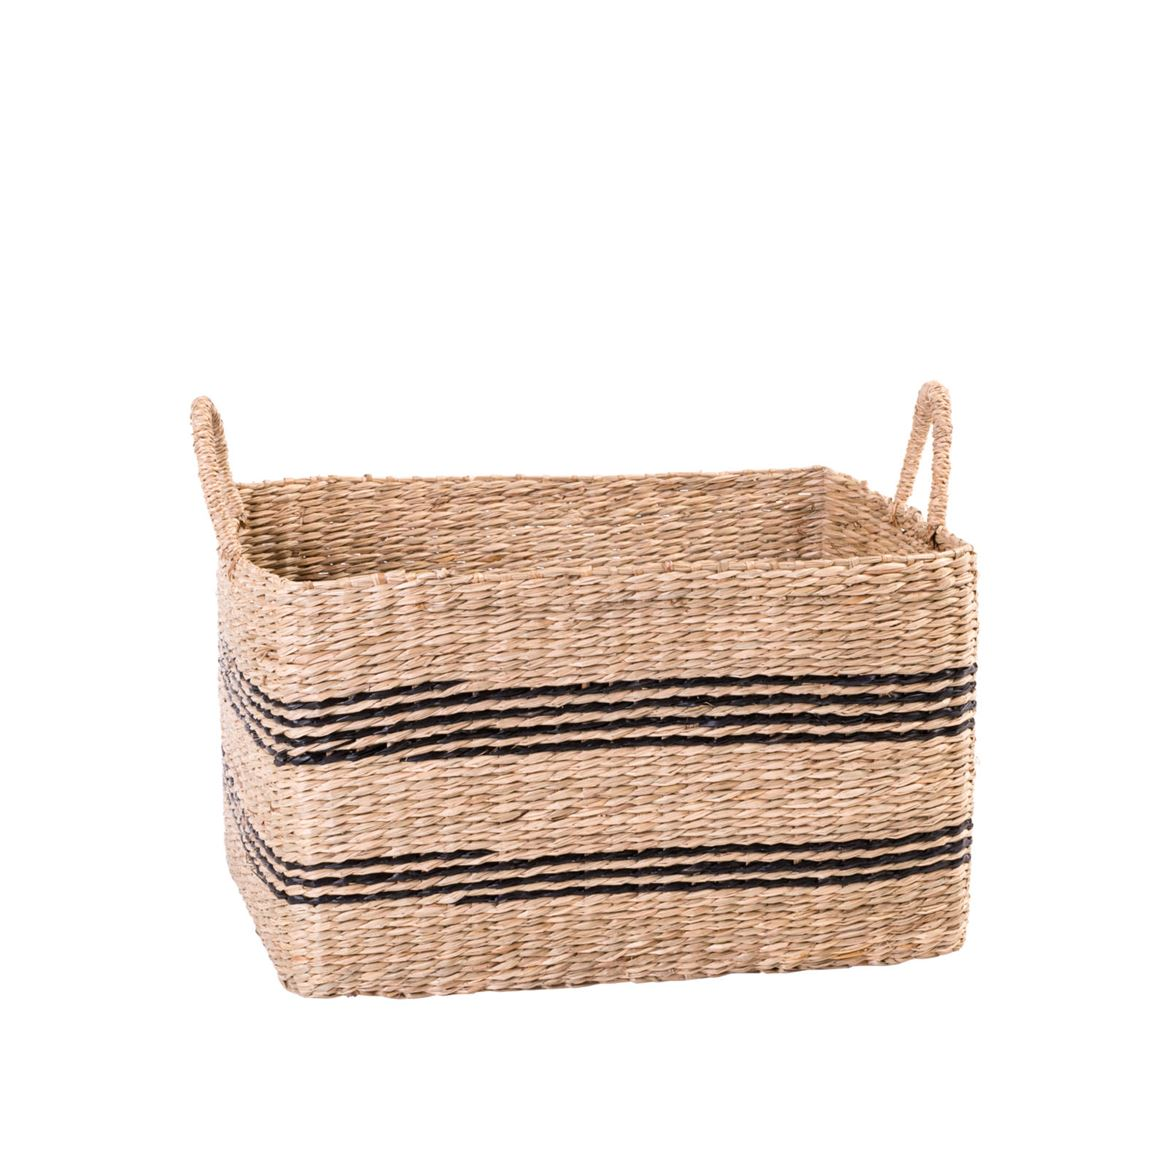 BILLY RAY Cesto nero, naturale H 30 x W 40 x D 36 cm_billy-ray-cesto-nero,-naturale-h-30-x-w-40-x-d-36-cm